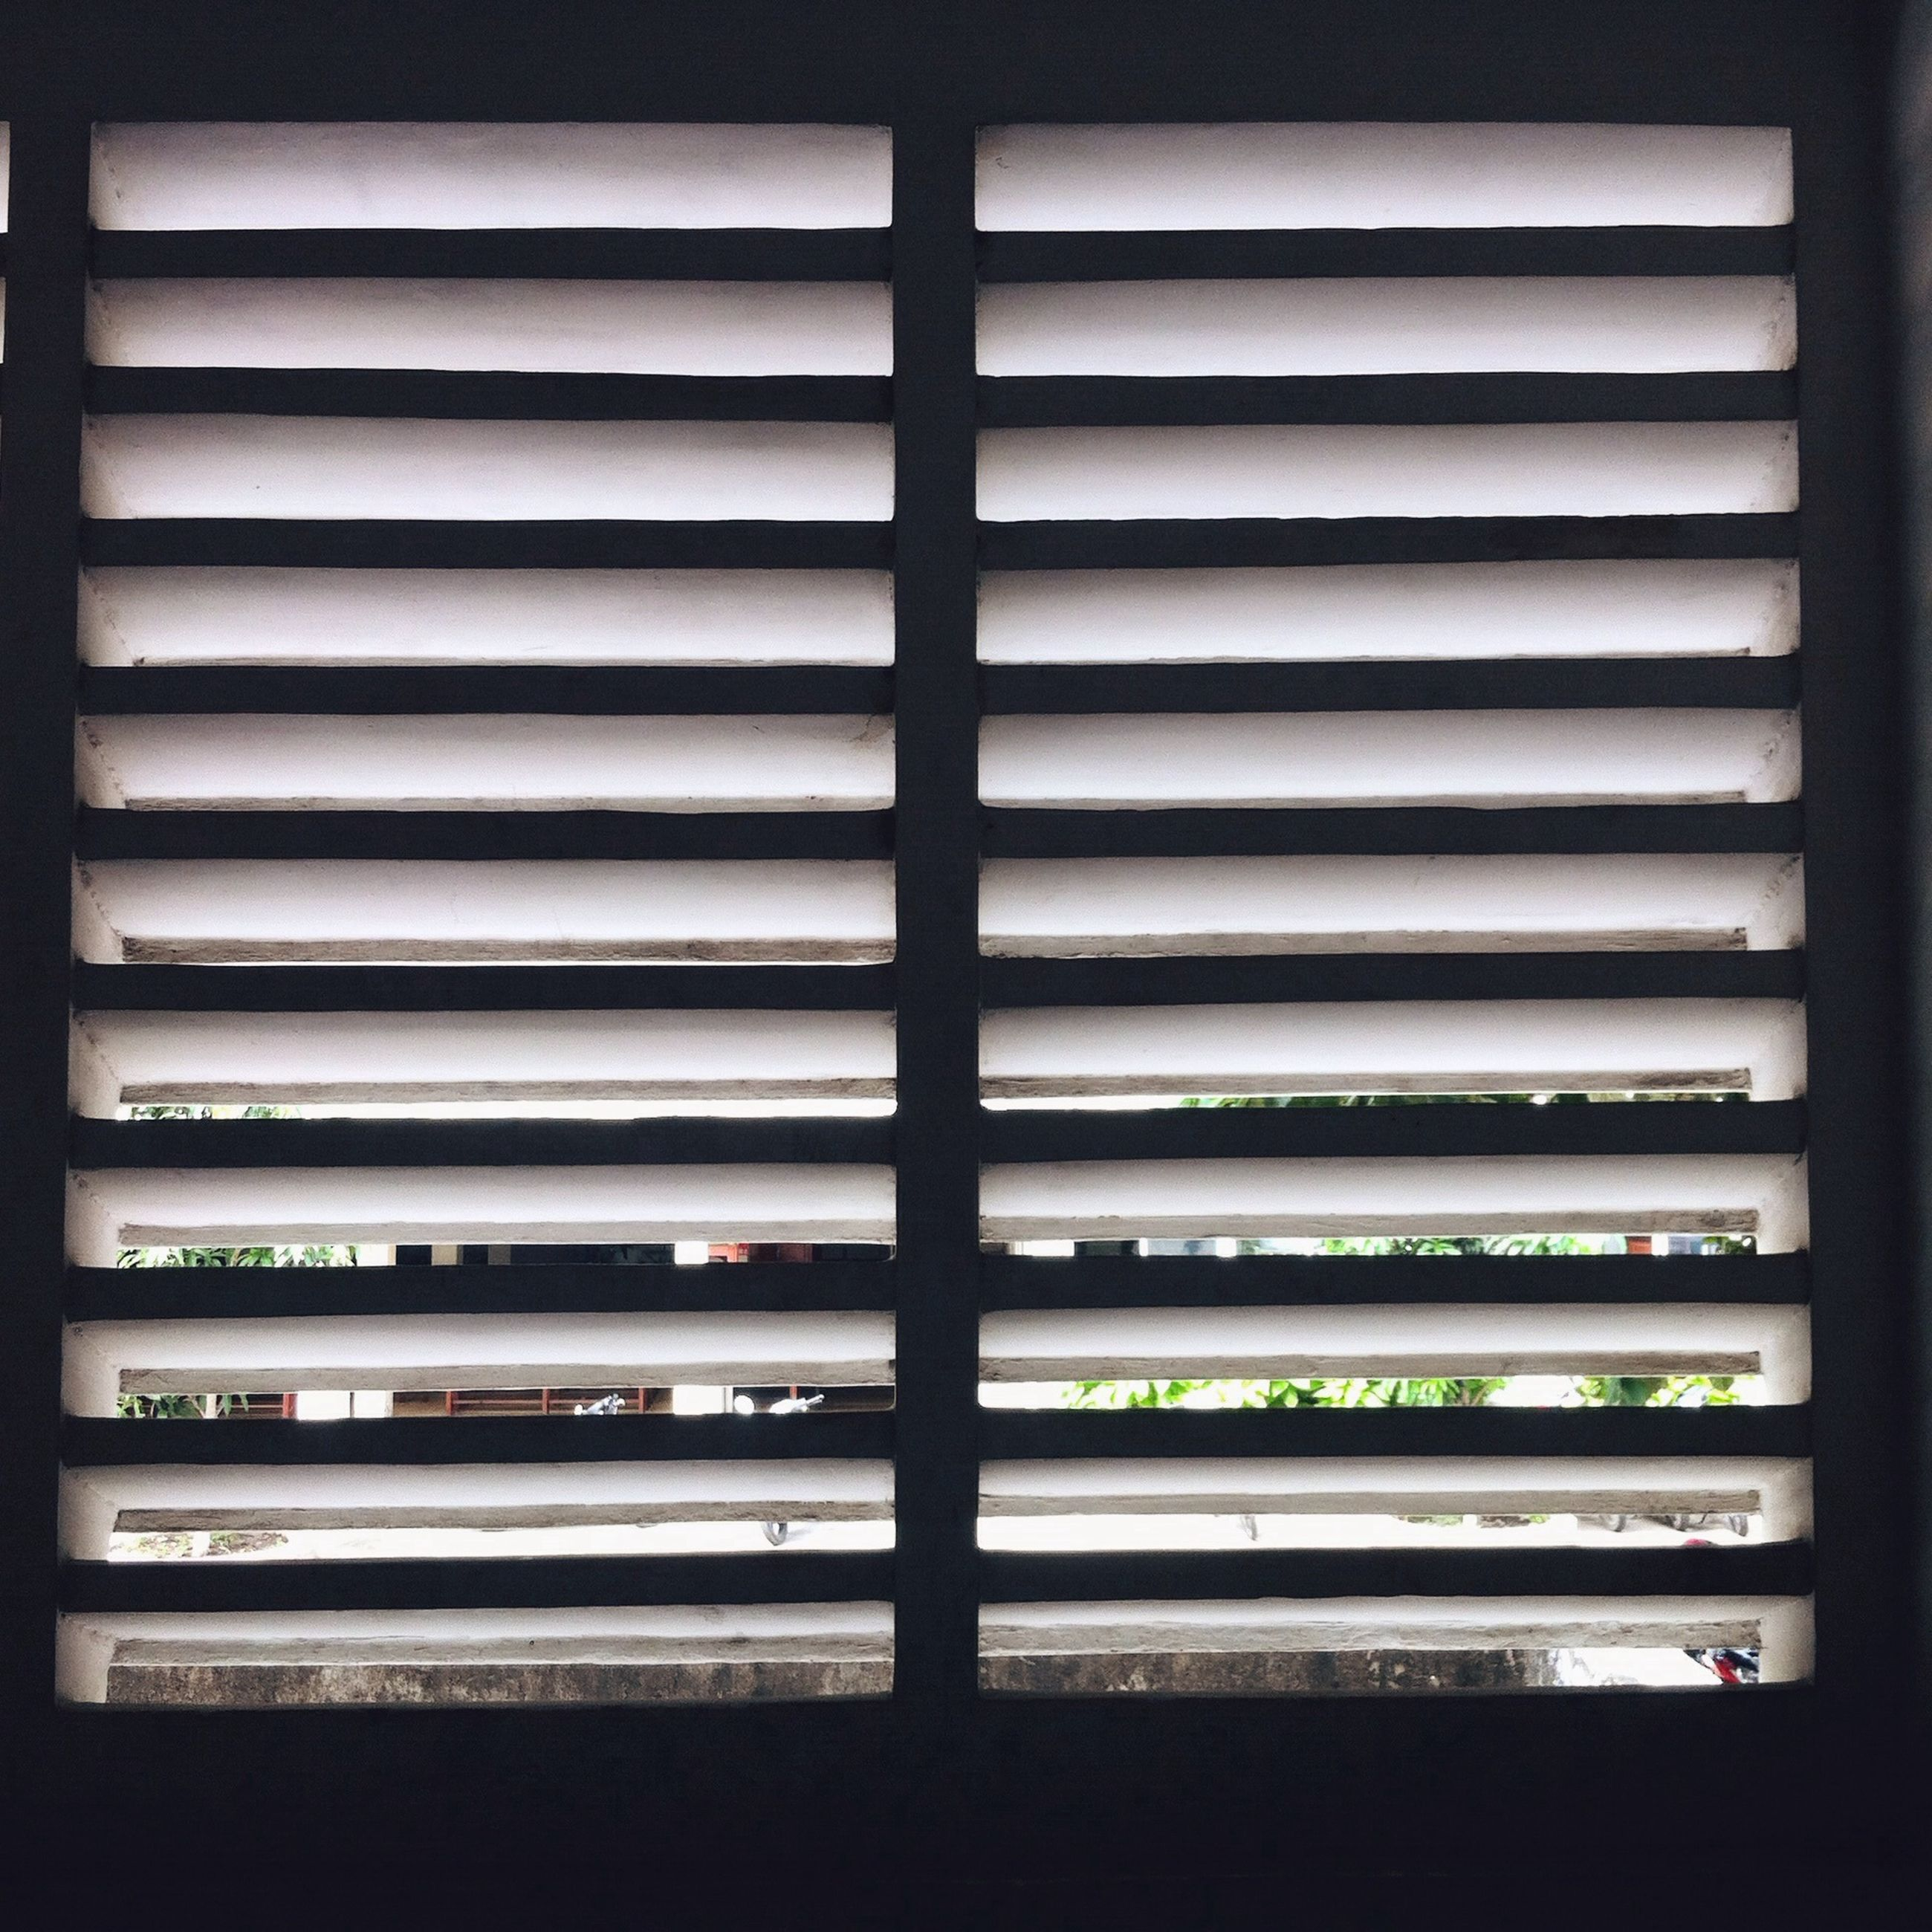 transfer print, full frame, indoors, backgrounds, window, repetition, pattern, in a row, auto post production filter, blinds, close-up, no people, closed, order, side by side, glass - material, day, design, white color, detail